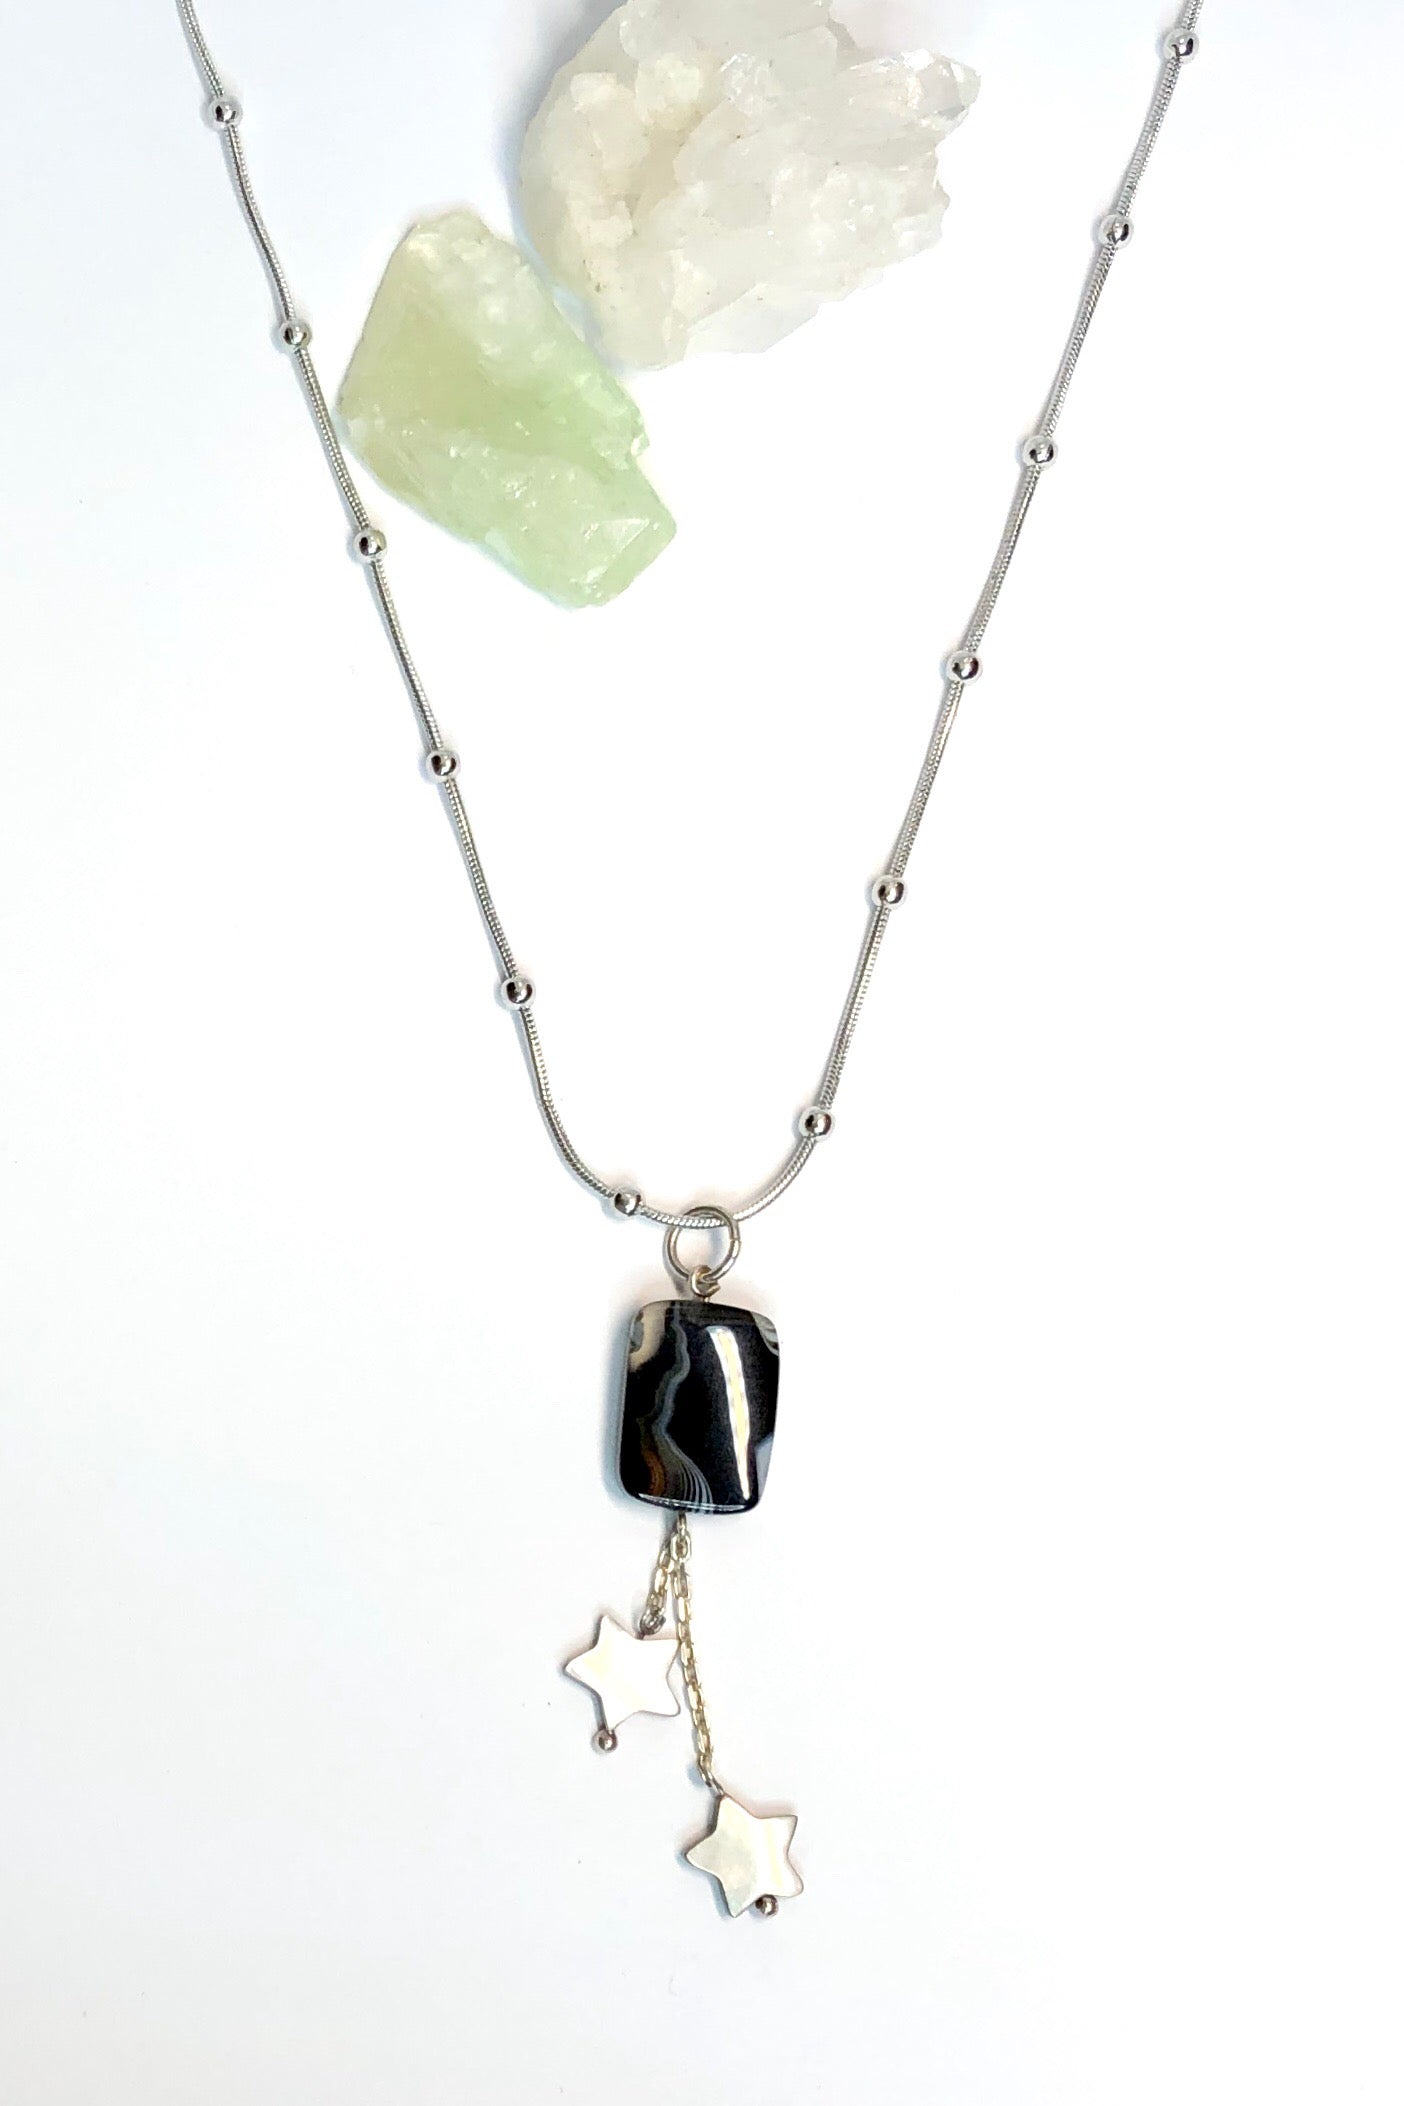 A little bit of night mystery and magic in our Echo Gems pendant black stars featuring one off handmade pendant, silvery colour bobble chain, natural black banded agate gemstone and two hand cut mother of pearl stars hang off silver chain.